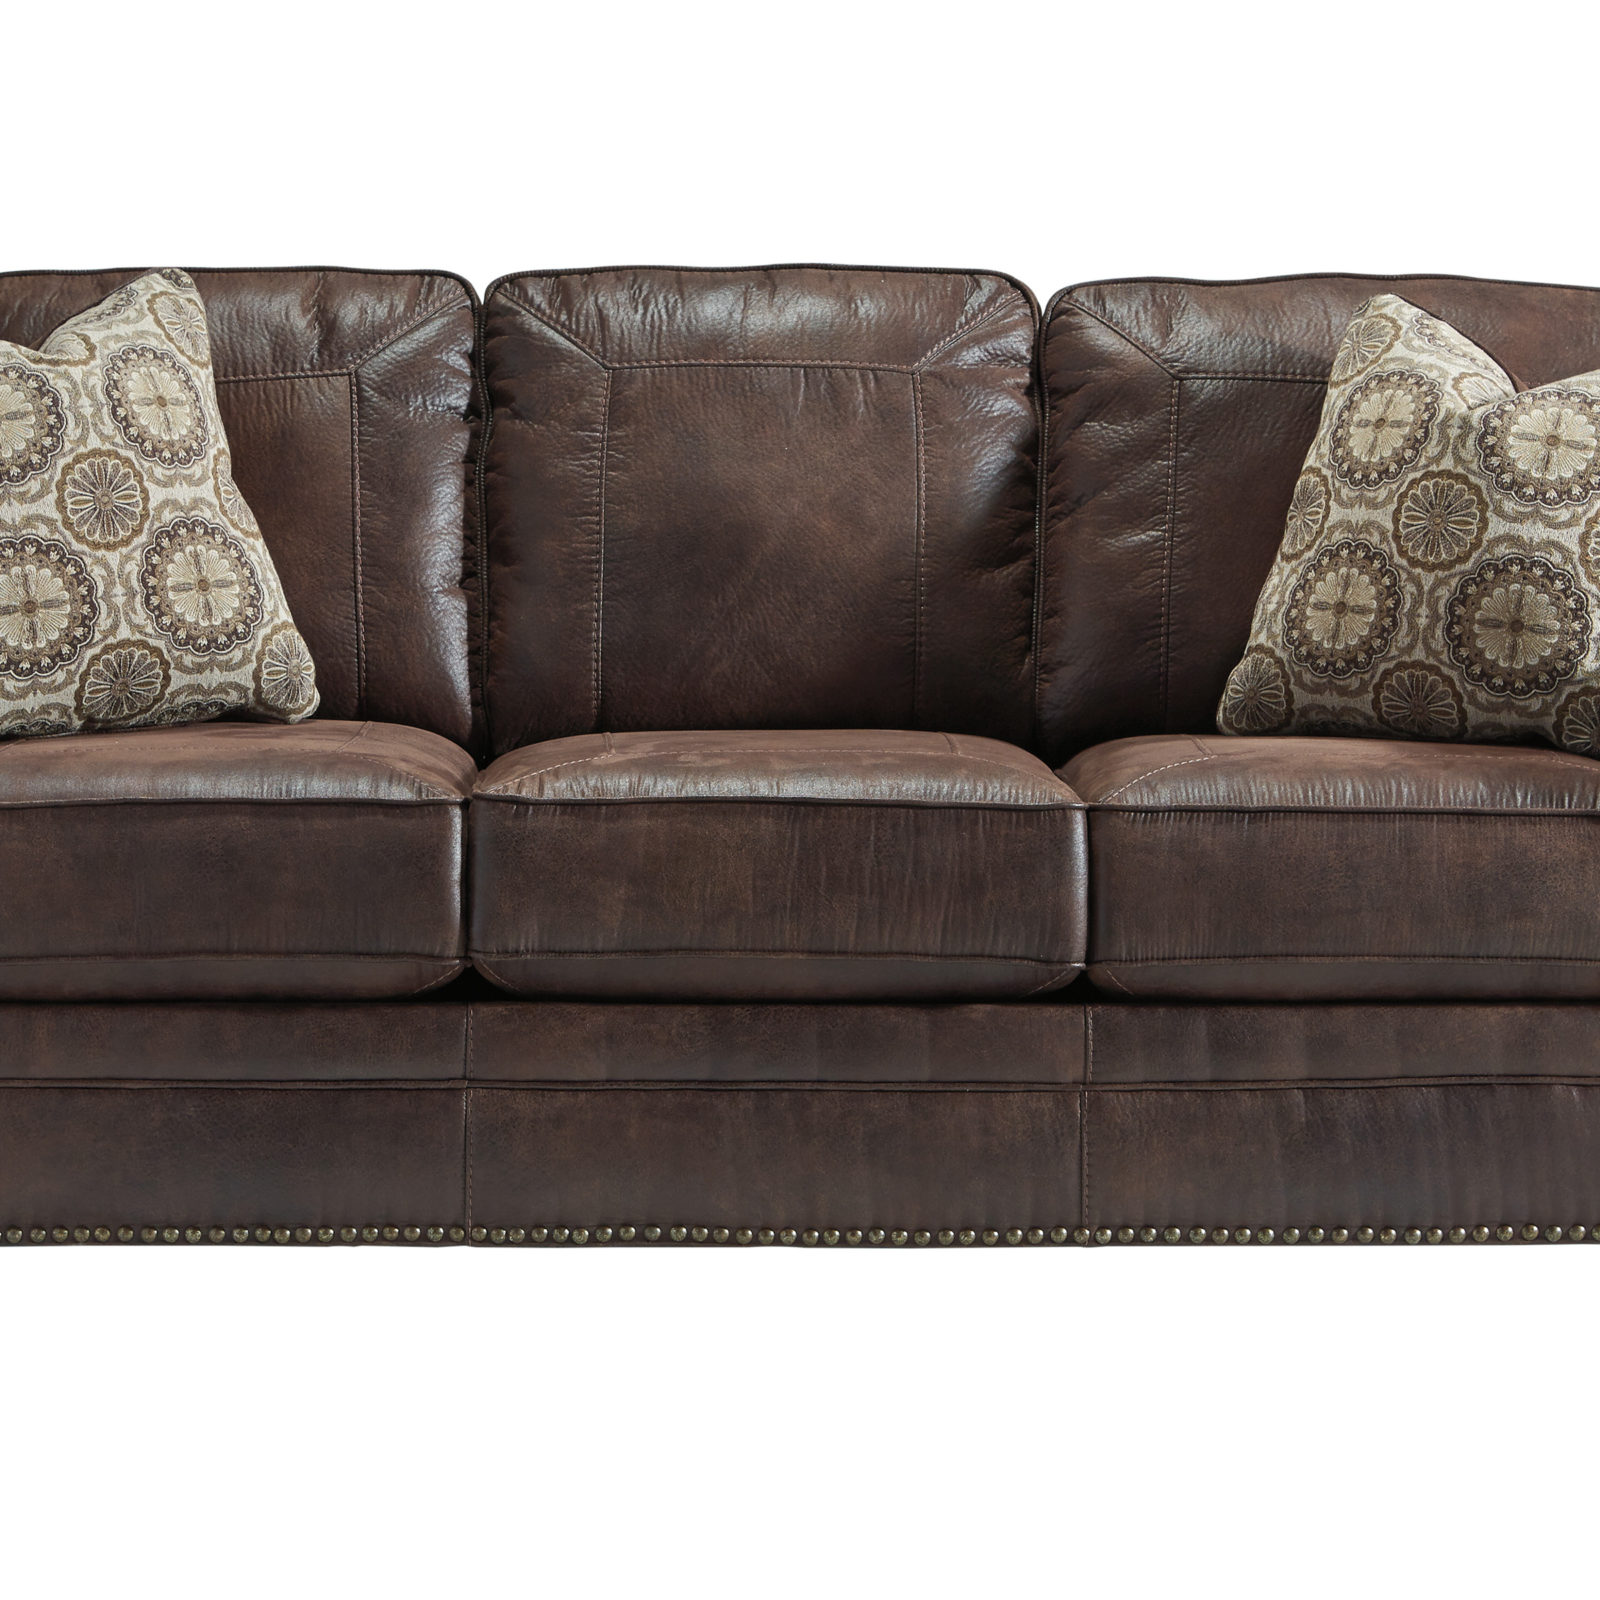 Loveseat Sofa Bed Ashley Furniture: Benchcraft Breville Queen Sofa Bed